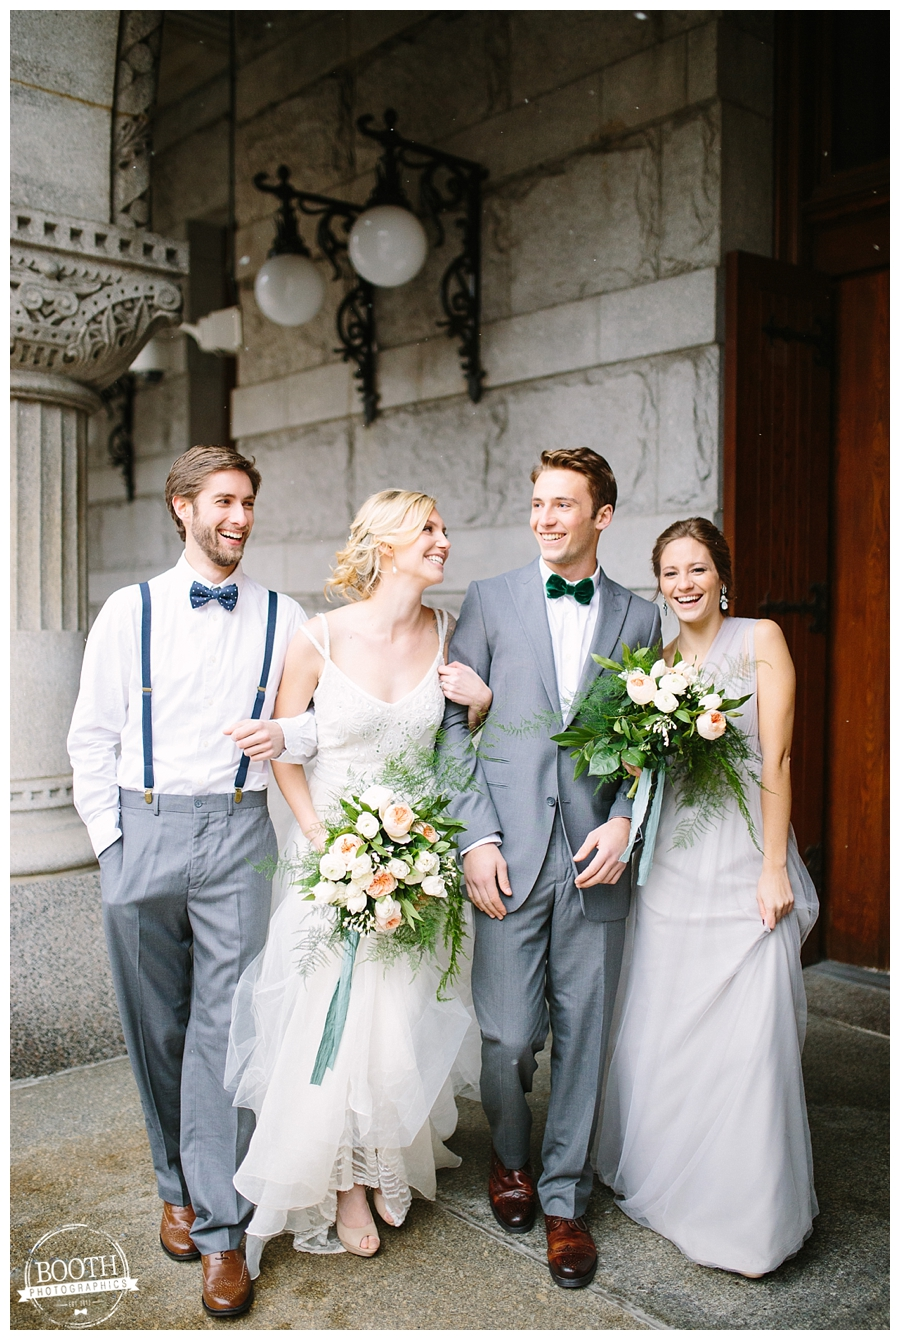 classy bridal party in BHLDN dresses and bow ties at a Milwaukee wedding